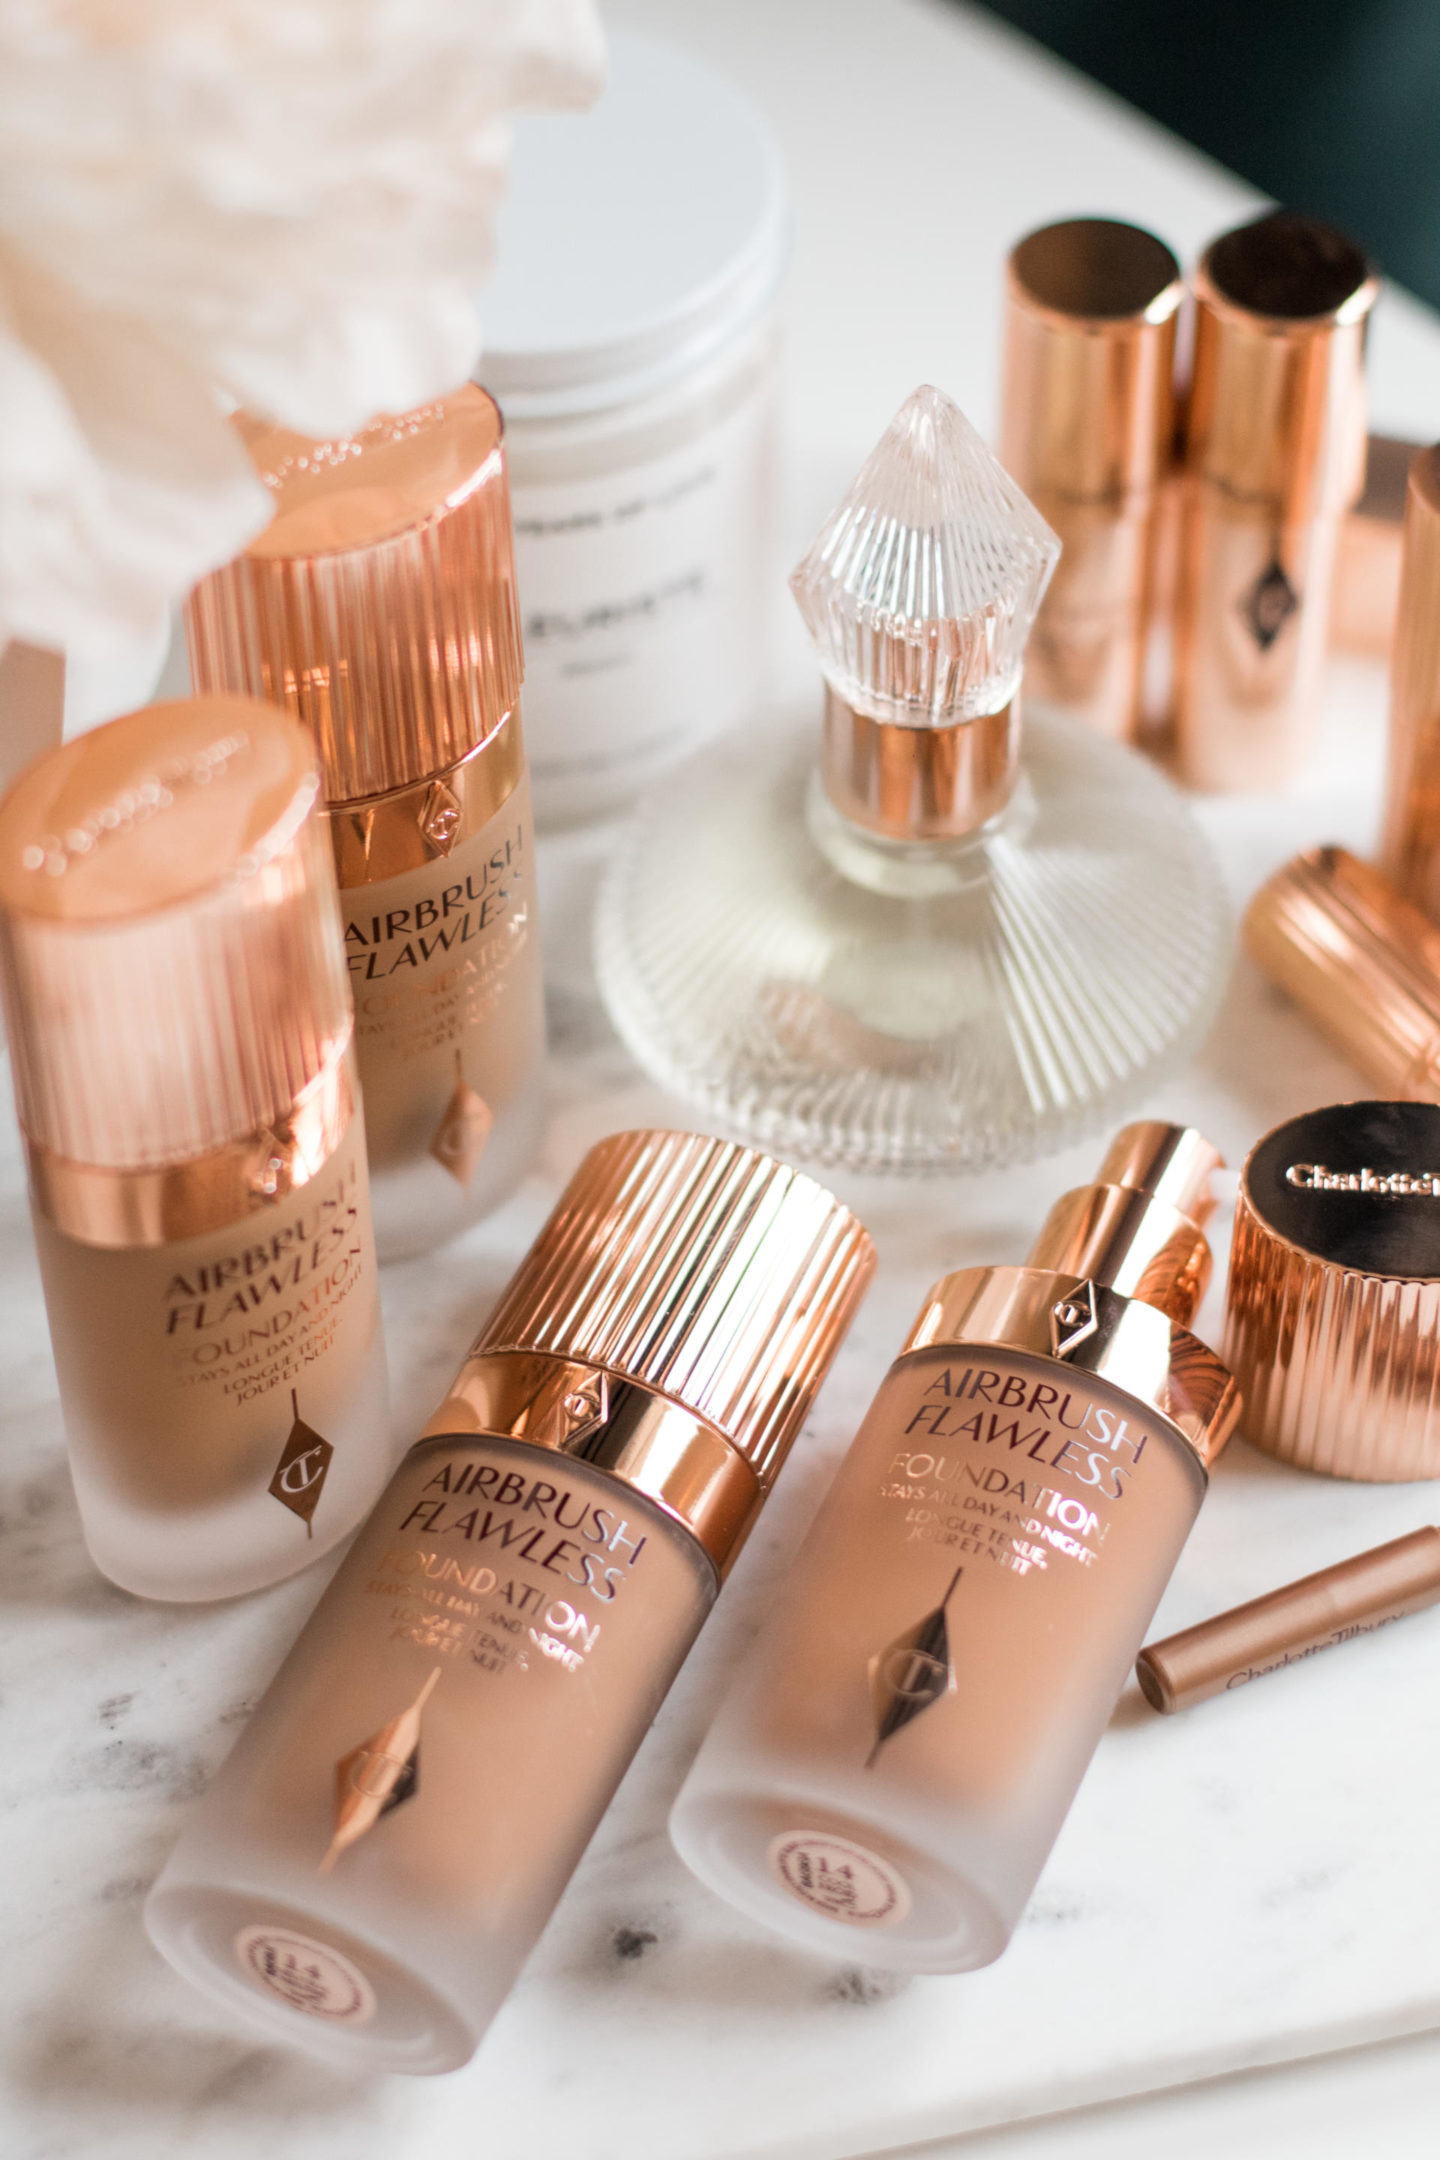 Charlotte Tilbury Airbrush Flawless Foundation on Dominique Baker's Vanity Table